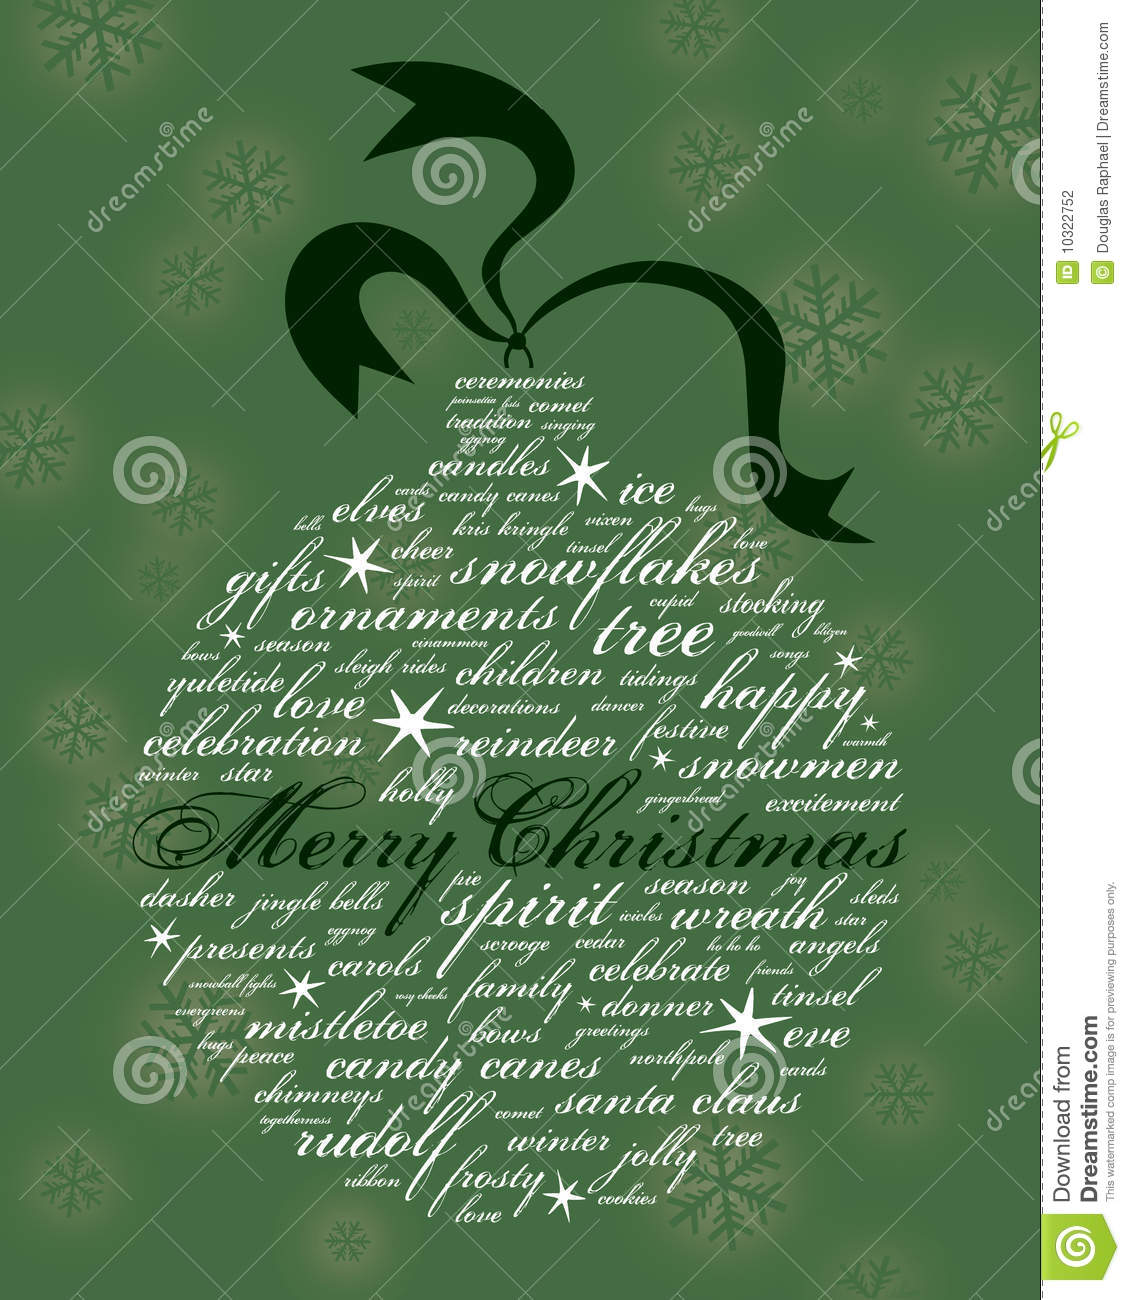 Merry christmas and other holiday words in the shape of an ornament on